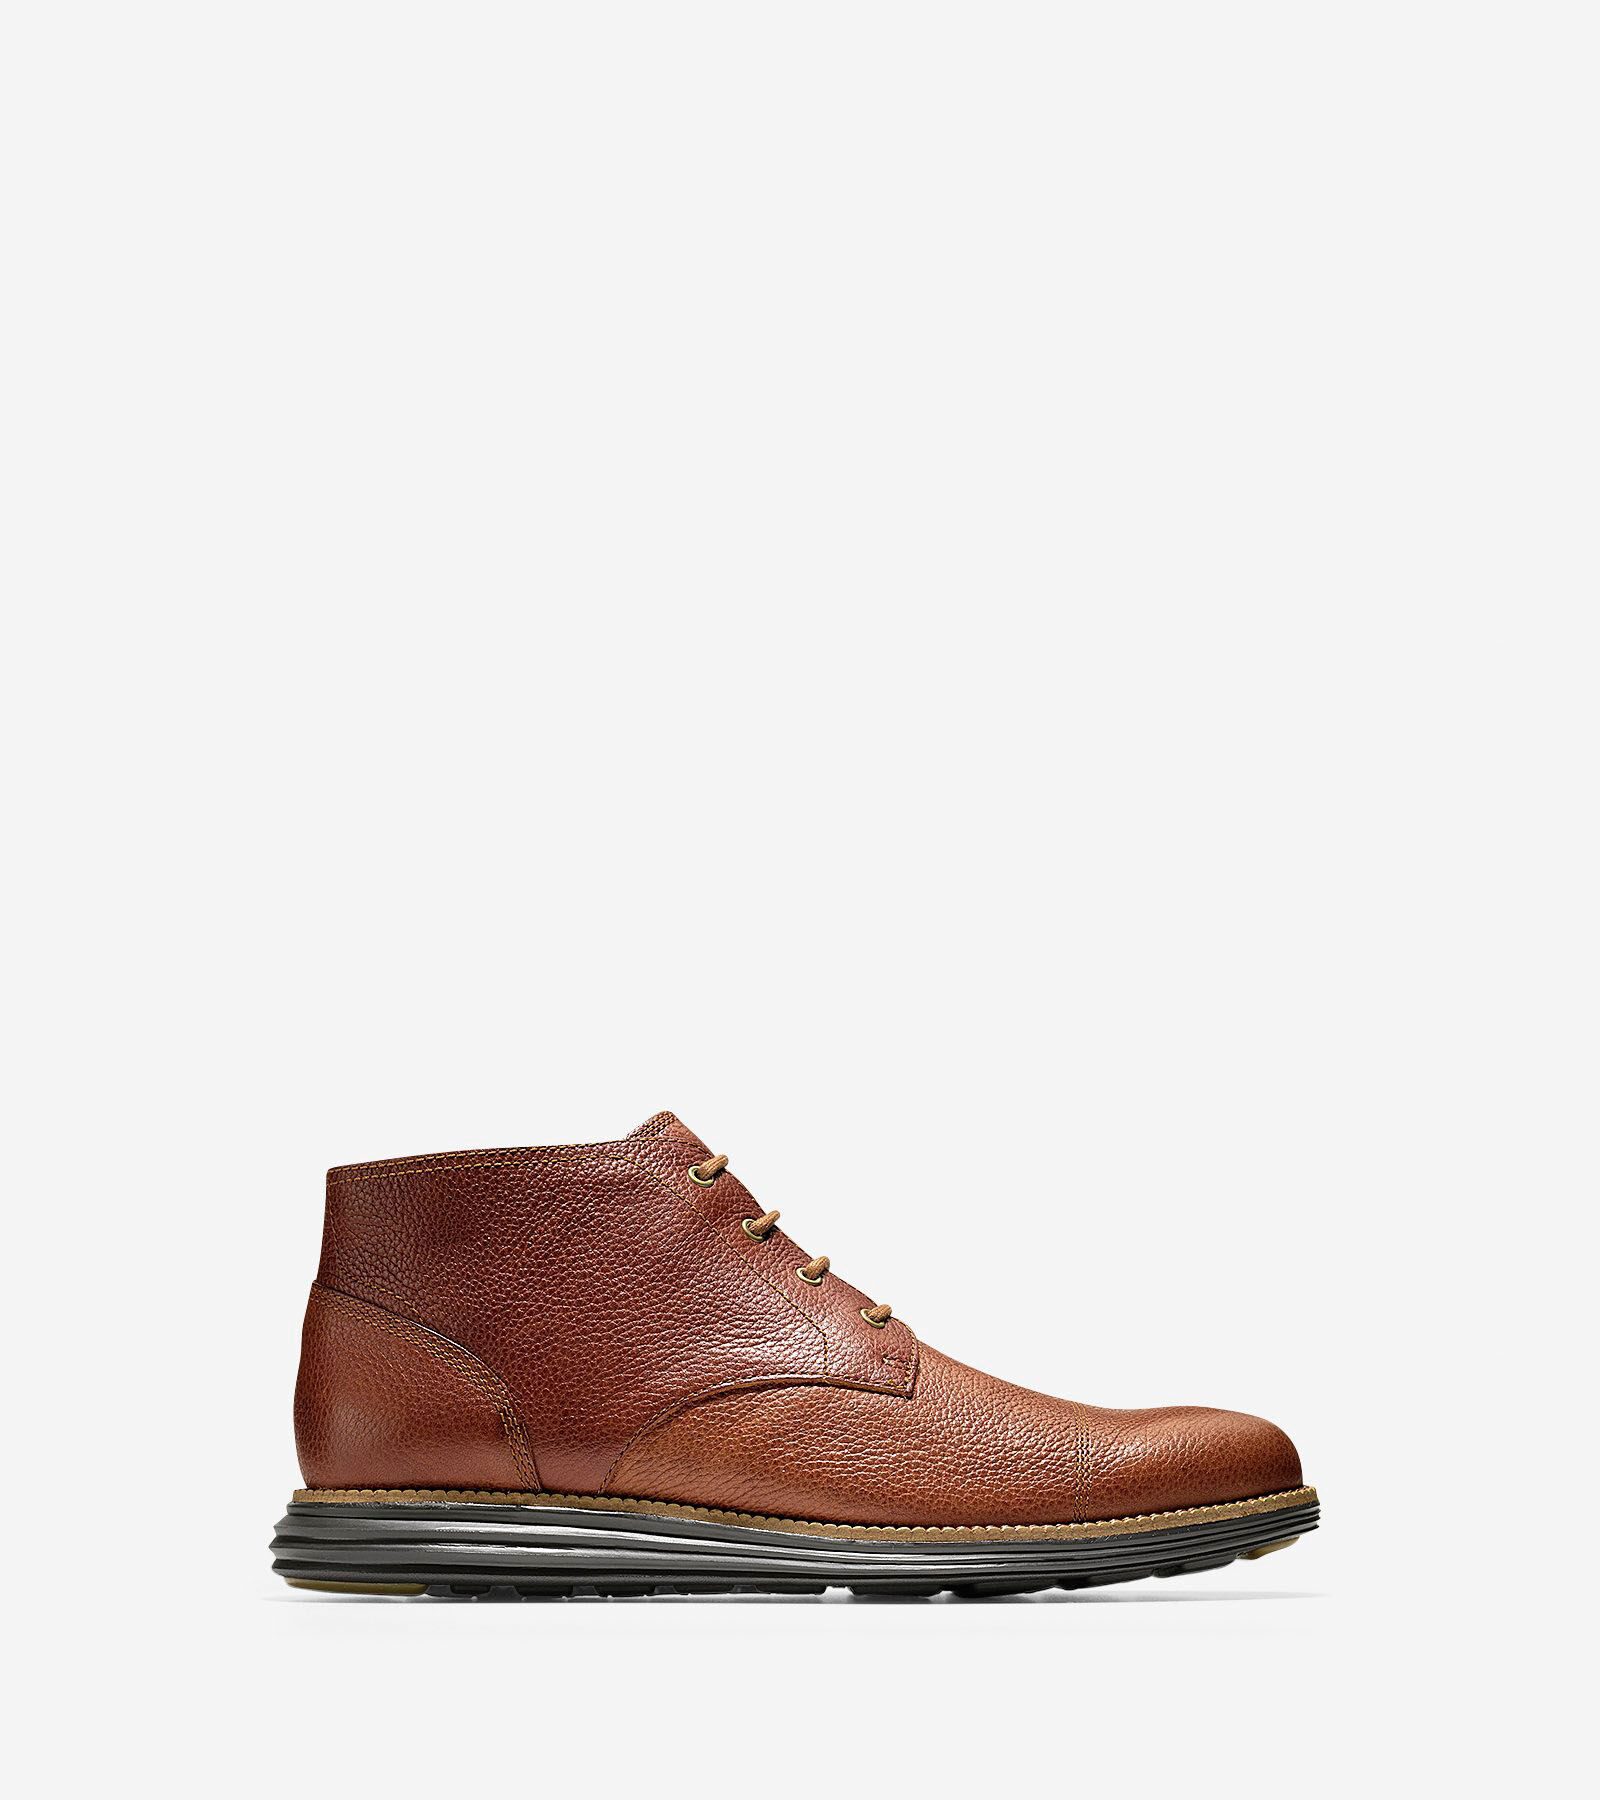 Men's ØriginalGrand Chukka; Men's ØriginalGrand Chukka; Men's ØriginalGrand  Chukka; Men's ØriginalGrand Chukka. #colehaan